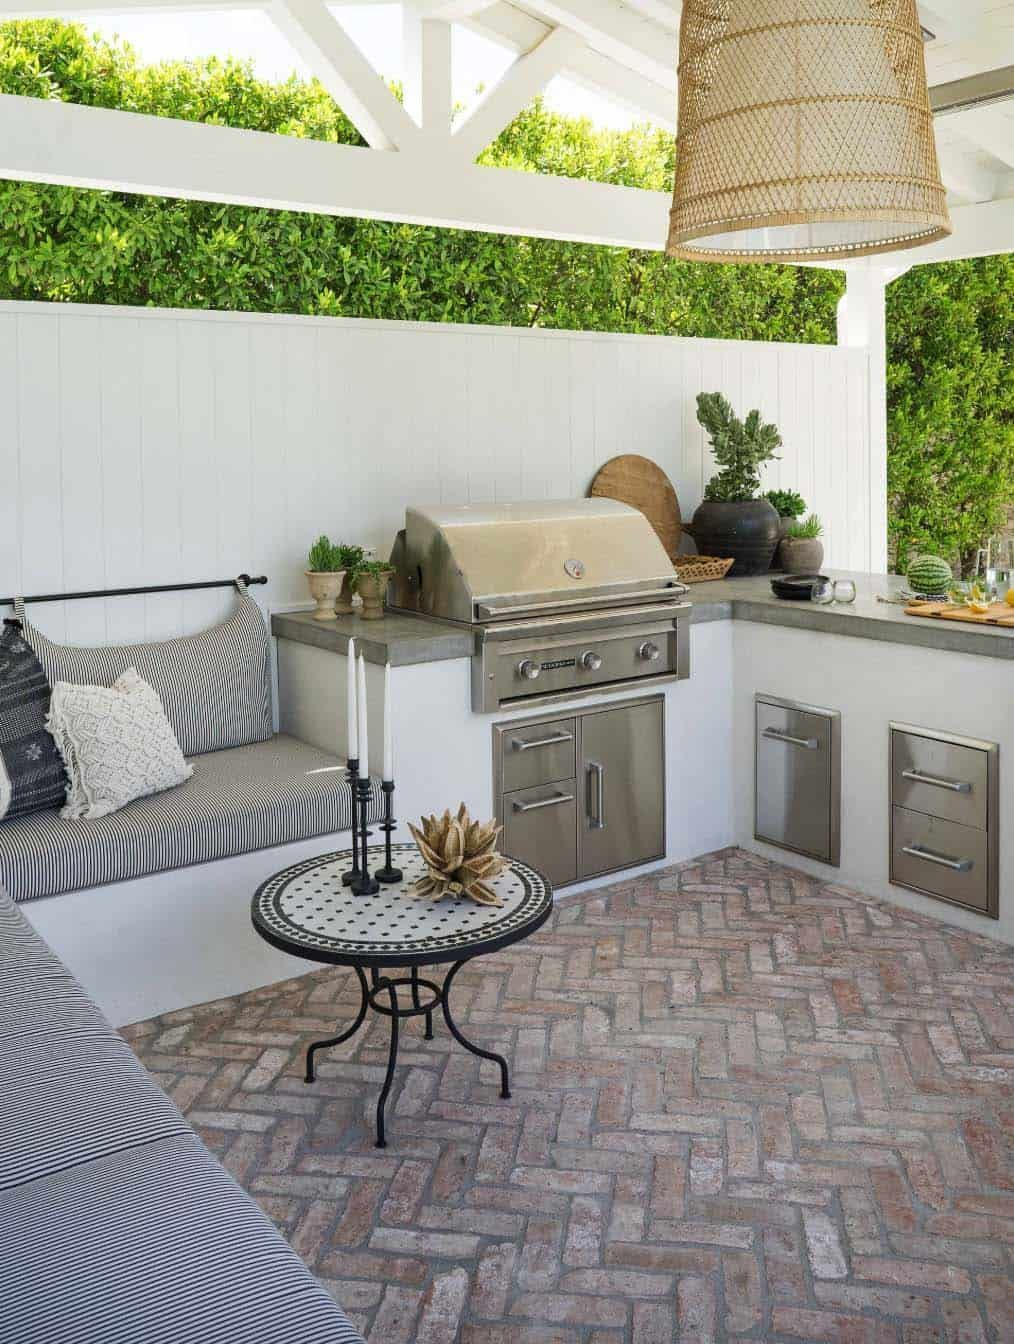 Amazing Outdoor Kitchen Ideas For Small Spaces Outdoor Kitchens Make Life Simpler For Those Who Outdoor Kitchen Design Outdoor Kitchen Outdoor Kitchen Patio Small modern outdoor kitchen ideas